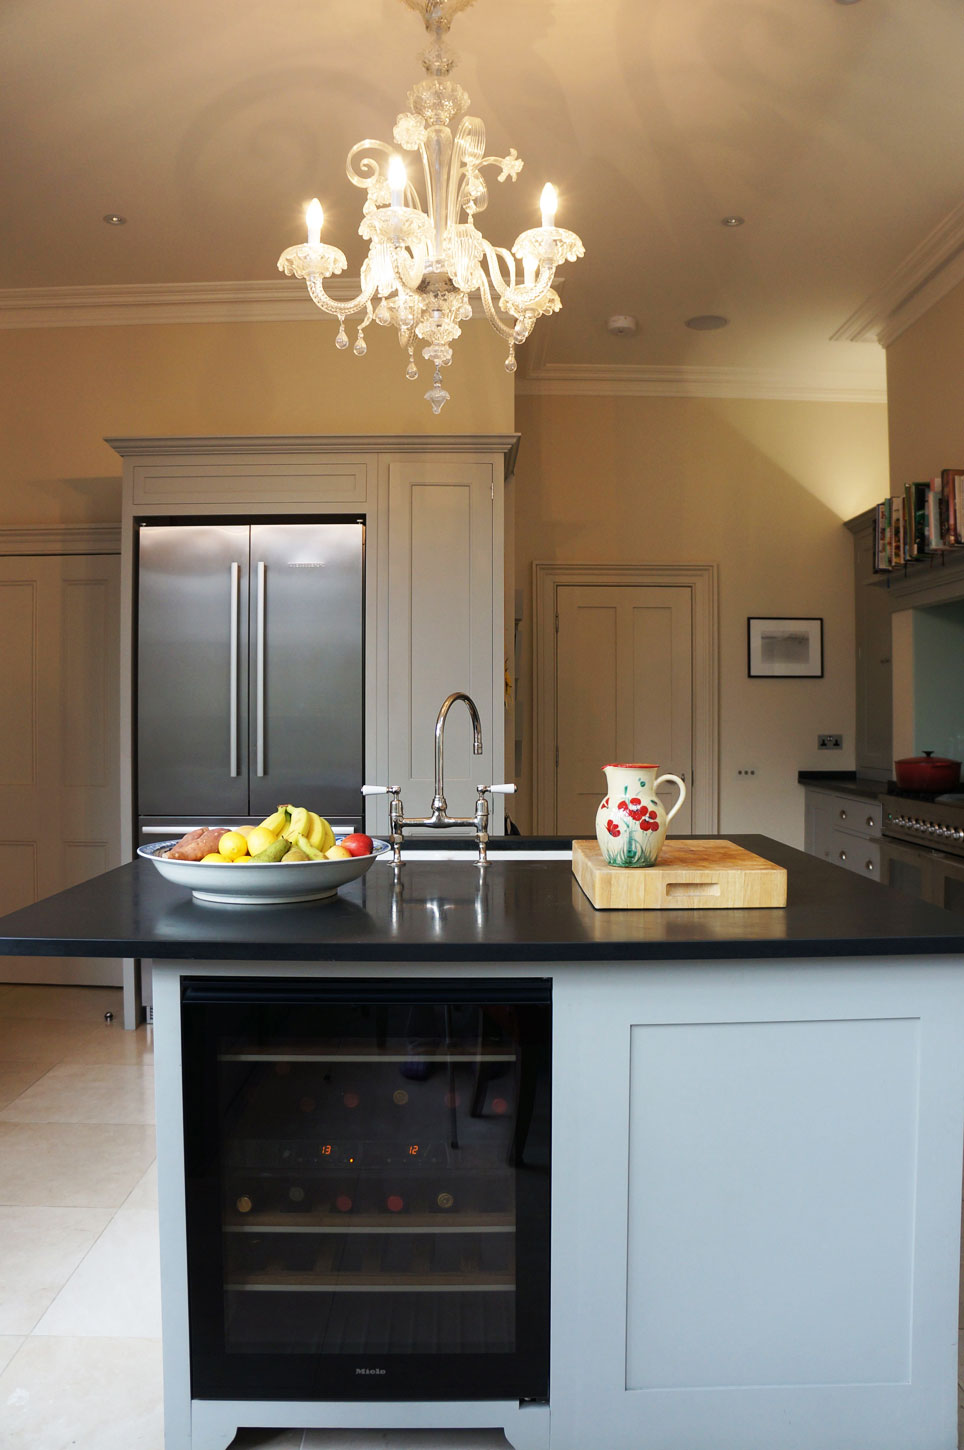 Painted wood kitchen by Plain English